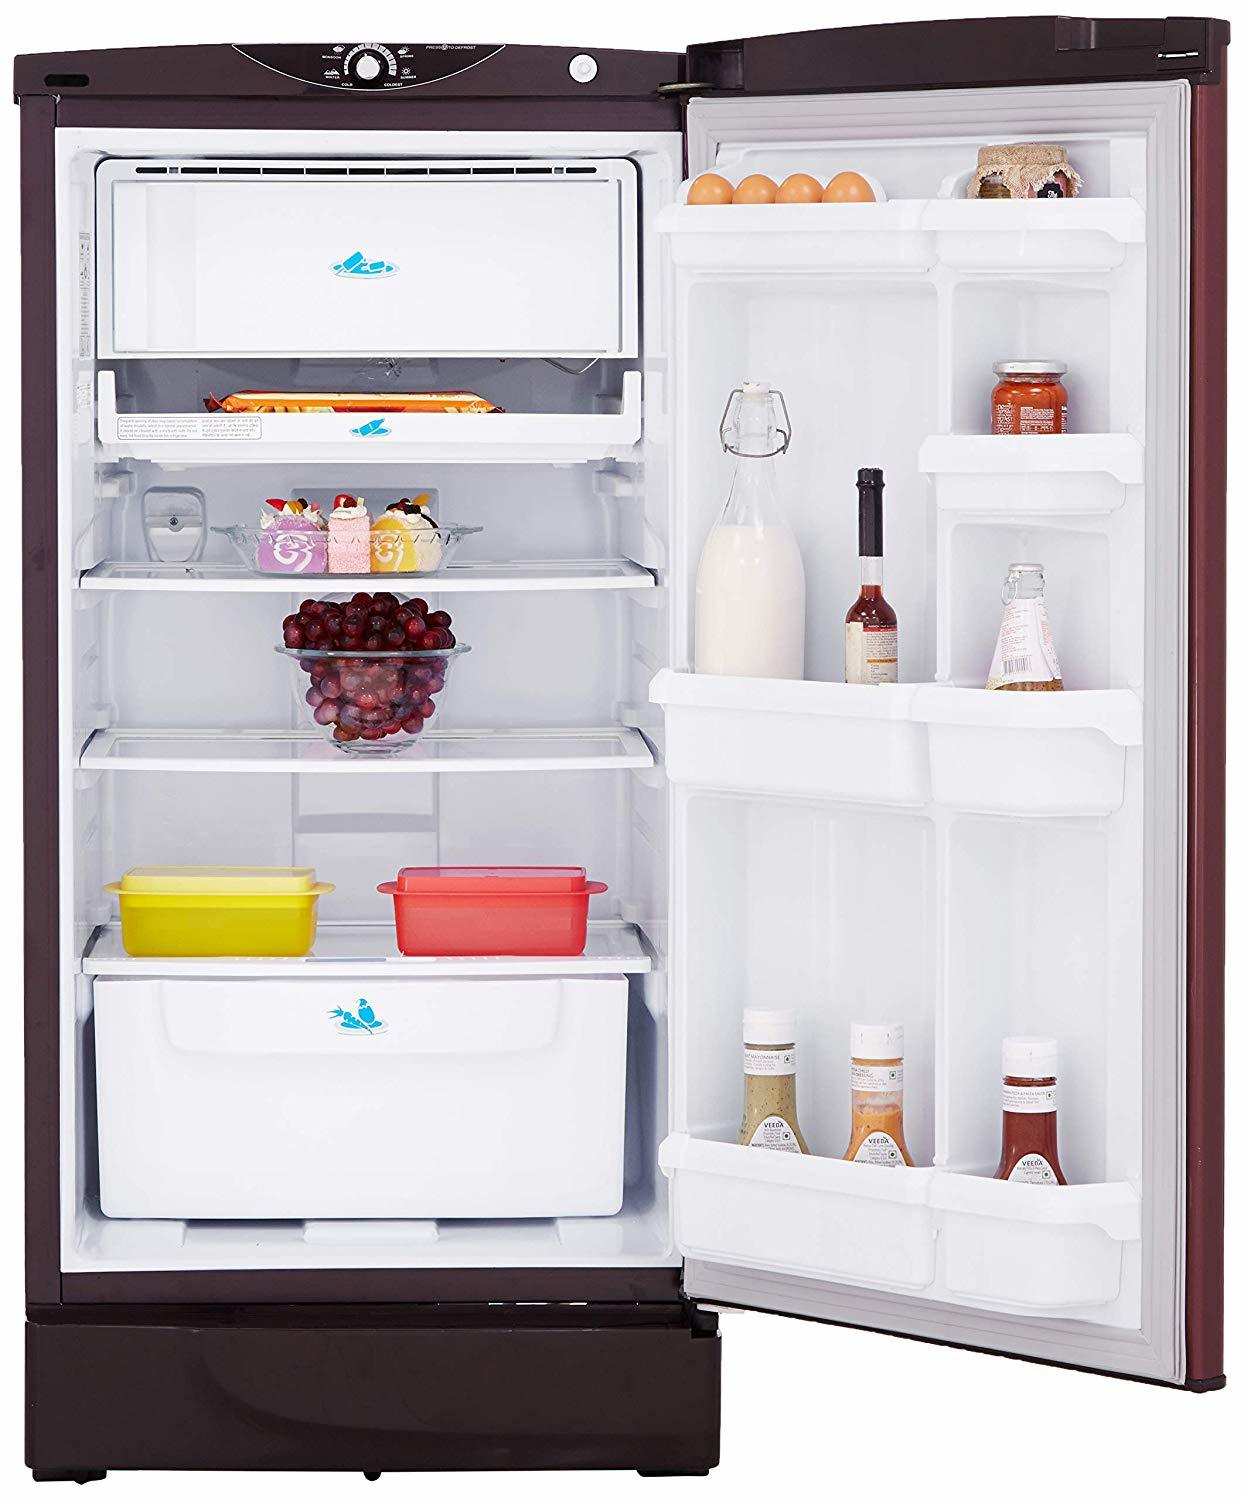 Godrej 190 L 3 Star (2019) Direct-Cool Single-Door Refrigerator (RD 1903 PT 3.2, Scarlet Dremin)